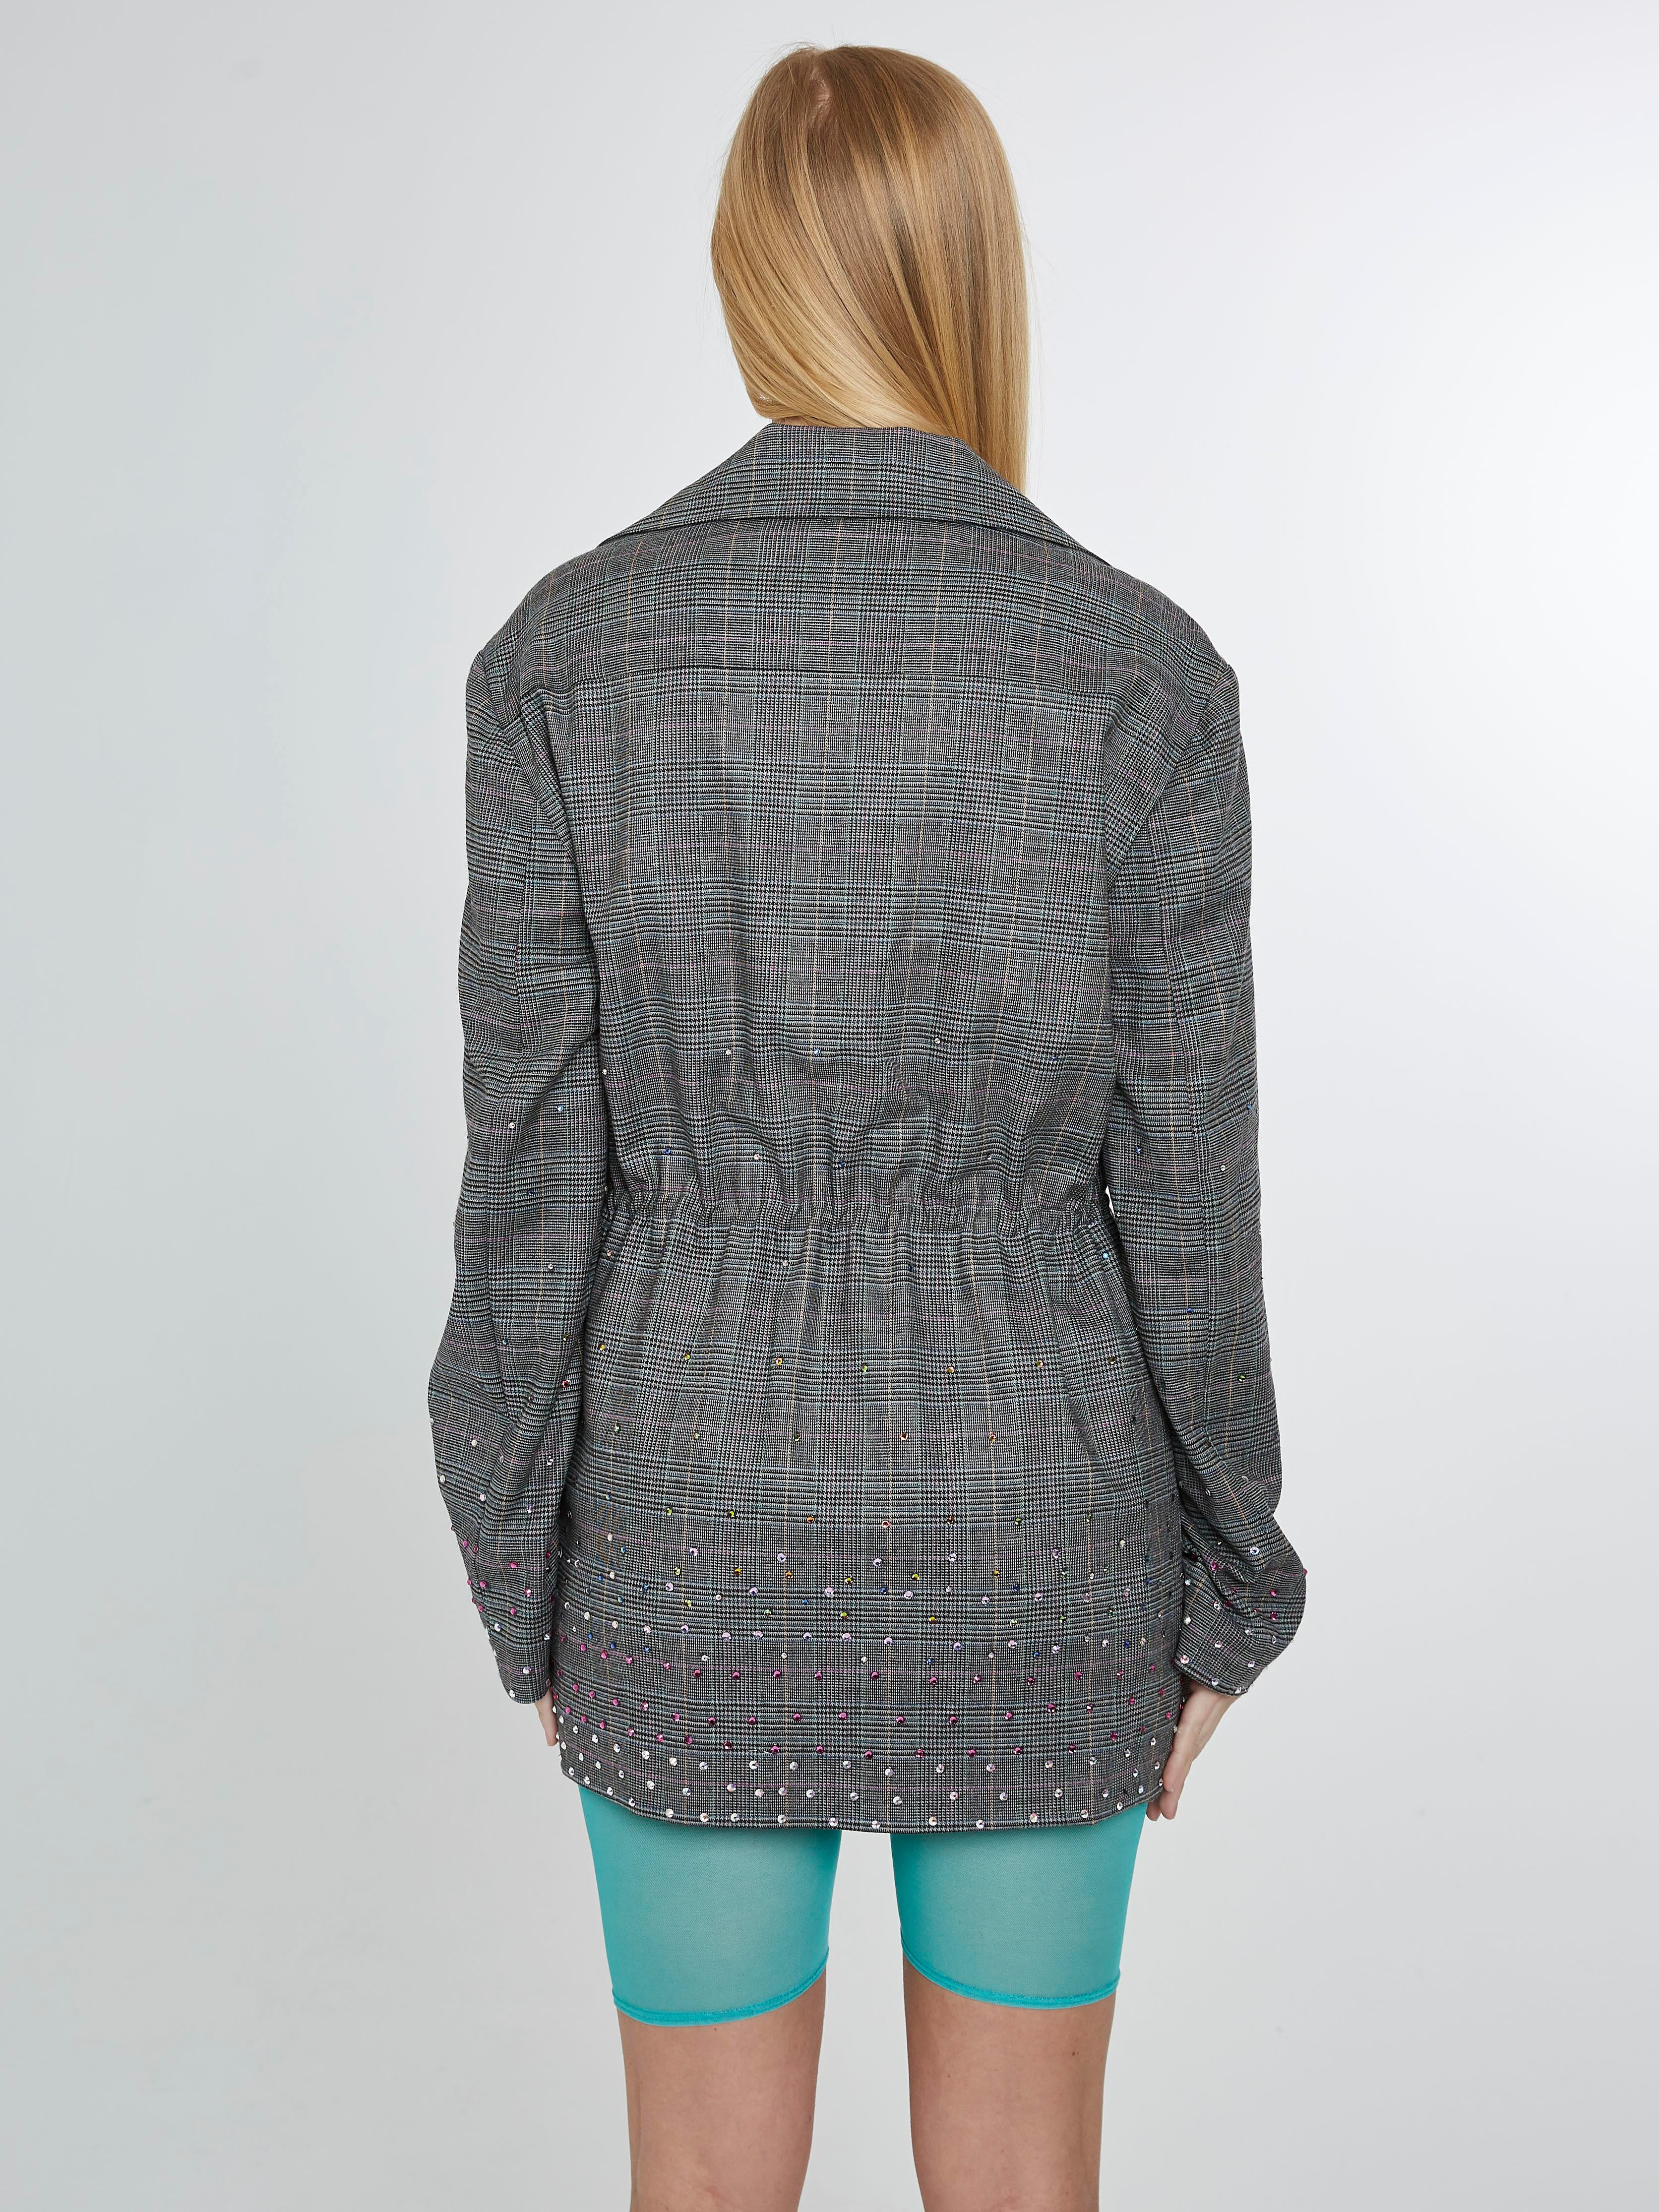 Sporty plaid blazer with multicolored crystals